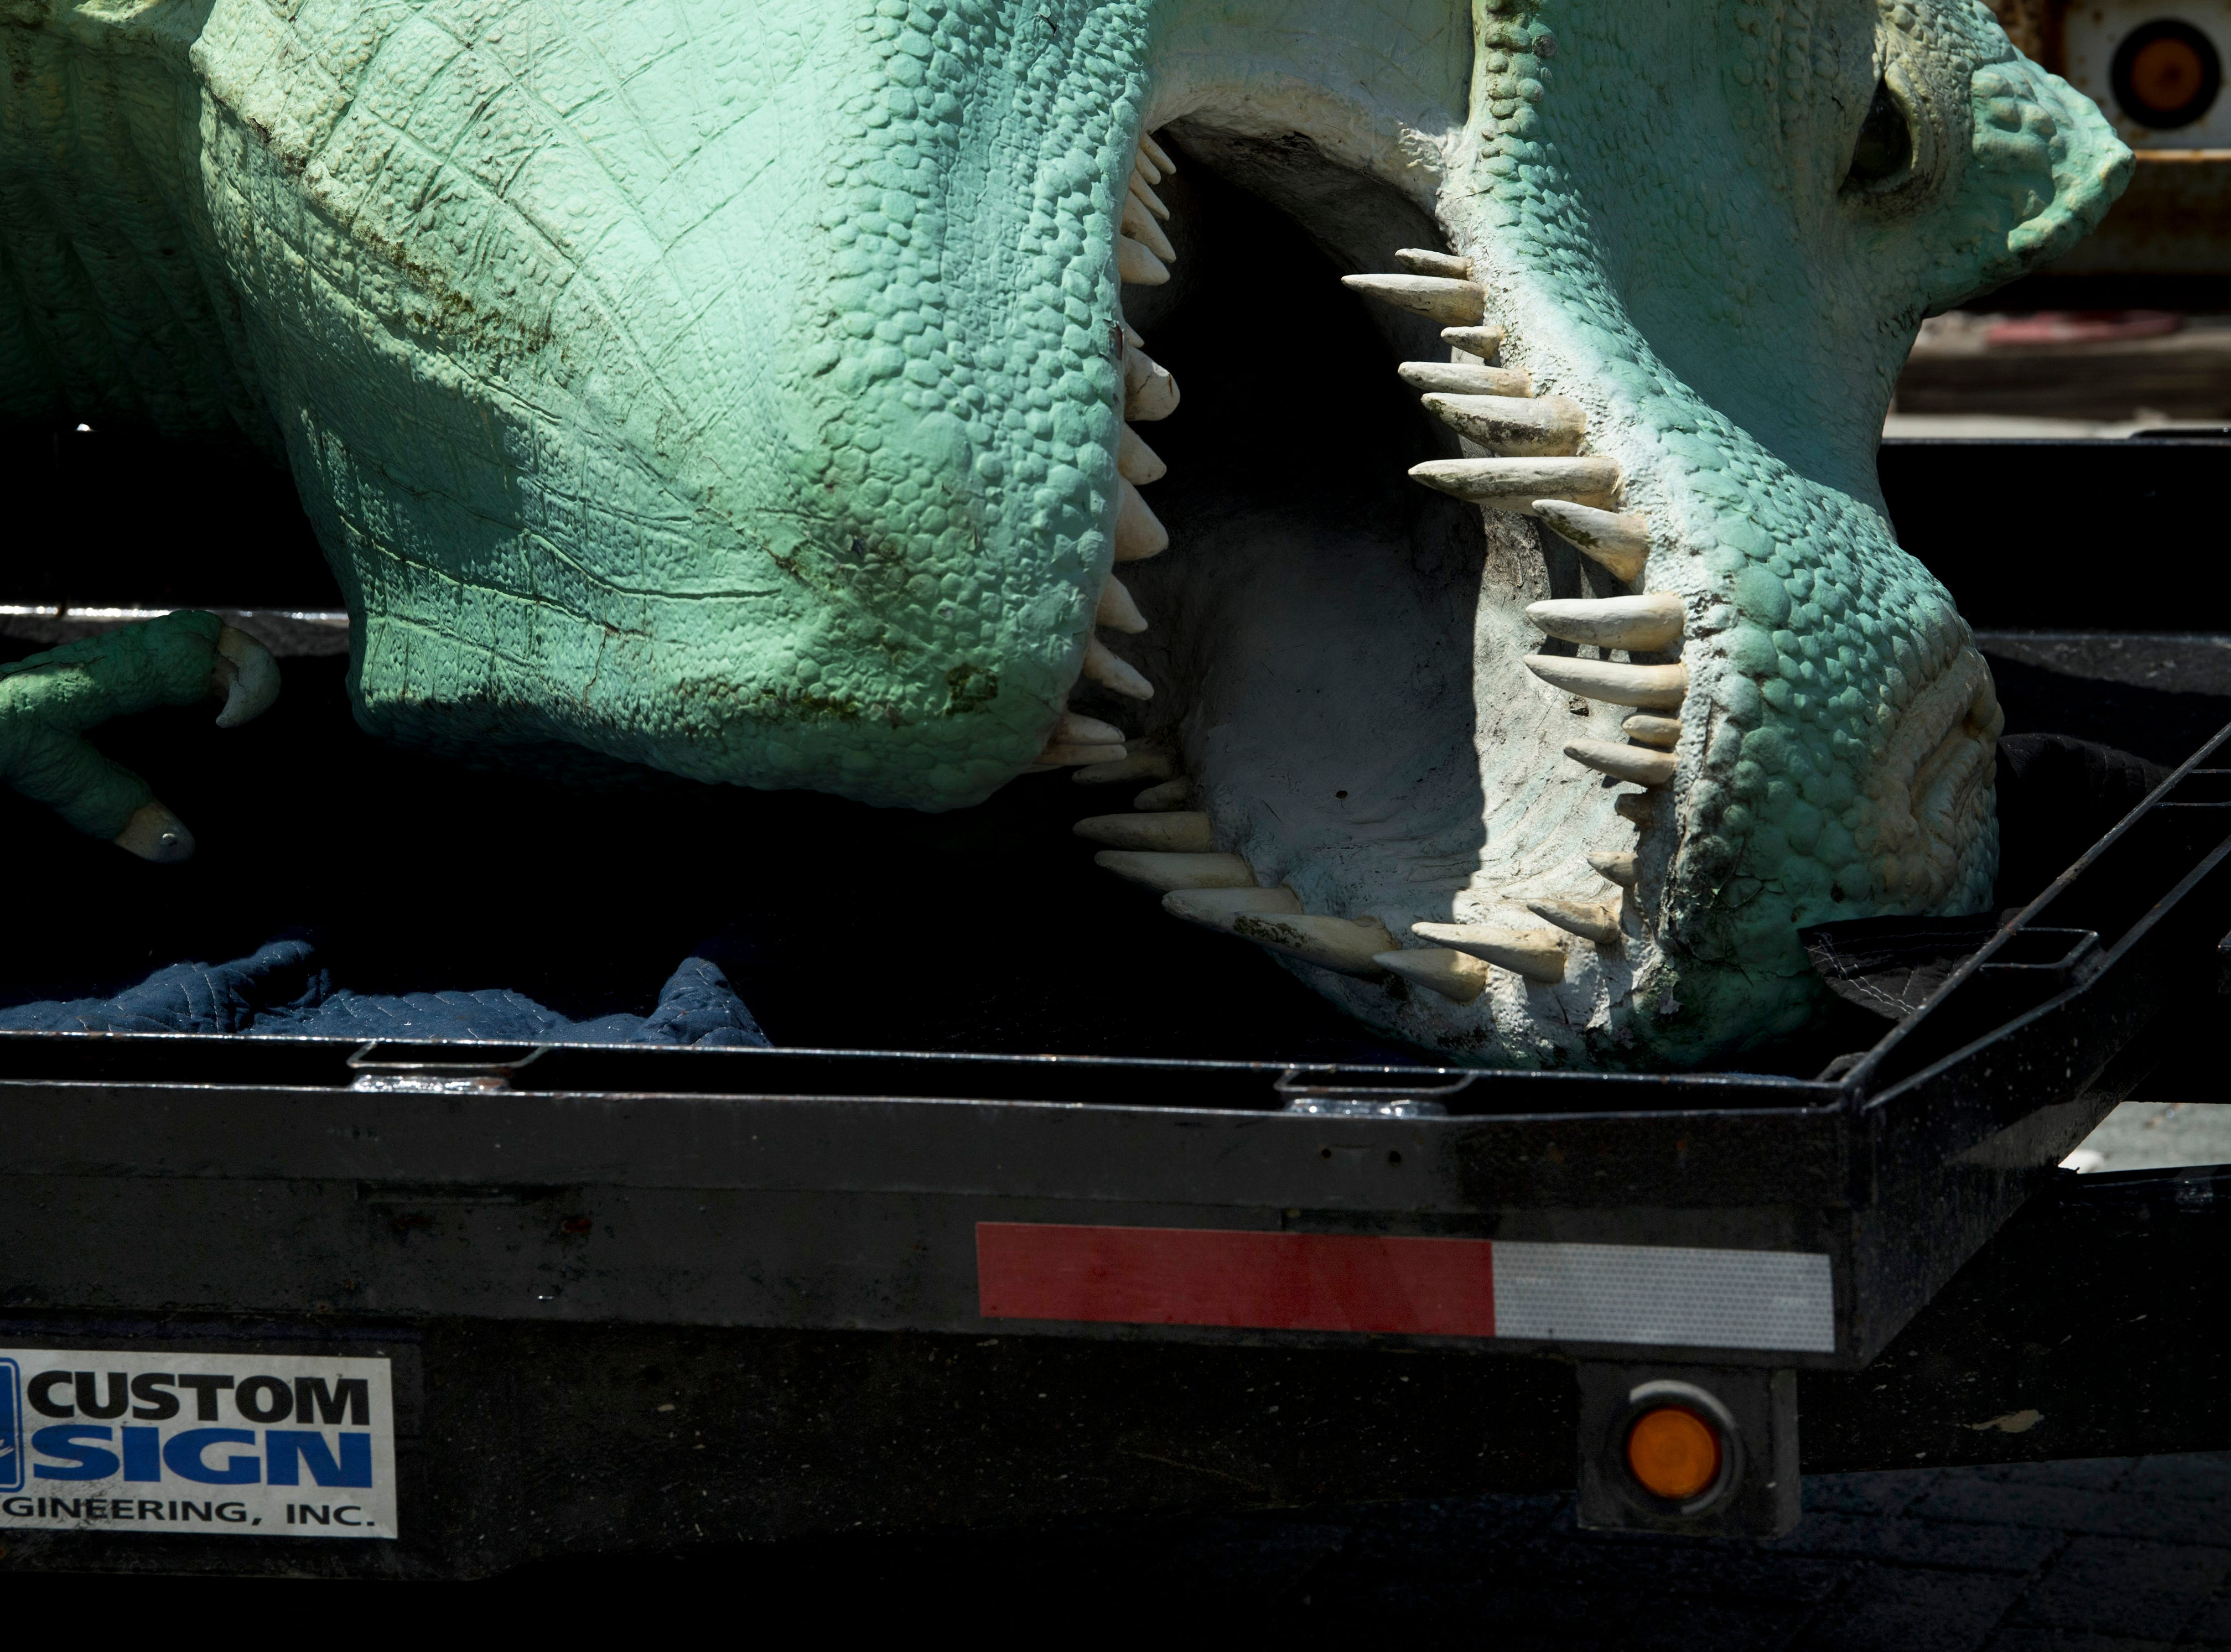 Millie, a Tyrannosaurus Rex dinosaur – and the Koch Family Children's Museum of Evansville's most recognizable face – is placed on the trailer of Custom Sign of Newburgh, Ind., Wednesday morning. Millie has perched atop her pedestal at the corner of Locust and Fifth streets for more than a decade and is getting a new paint job. It is unknown where the green T-Rex will reside after her facelift, but cMoe assures us Millie's new home will be easily seen in the Downtown Evansville area.